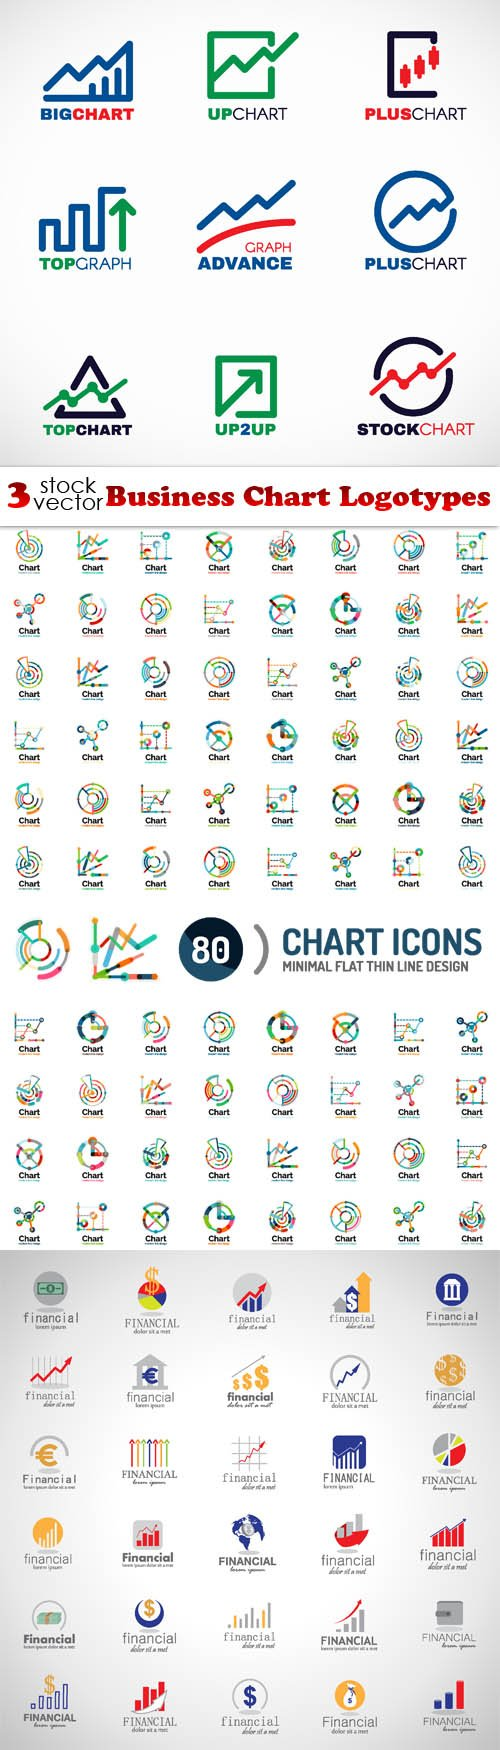 Vectors - Business Chart Logotypes